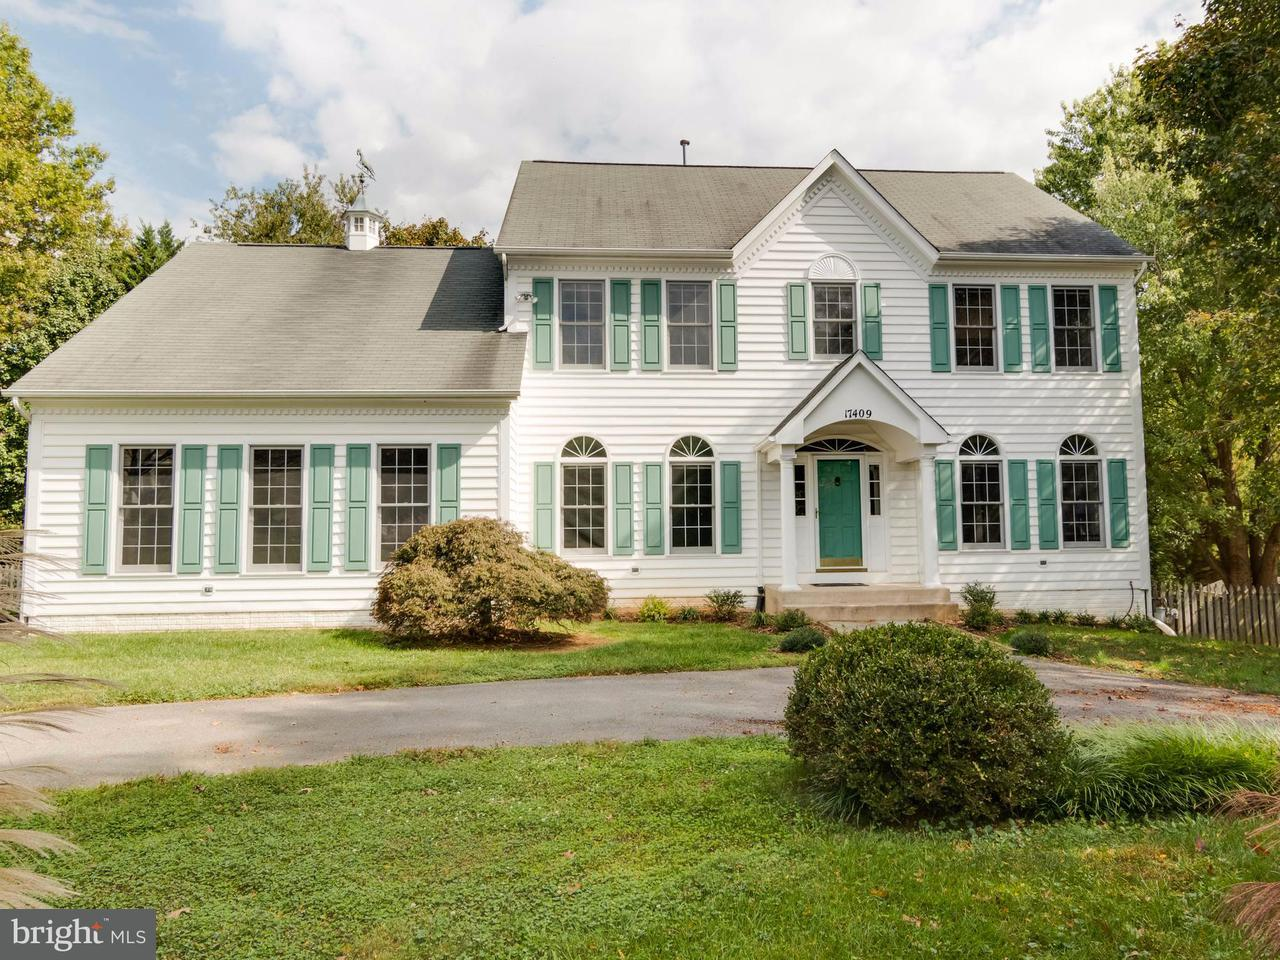 Single Family Home for Sale at 17409 REDLAND Road 17409 REDLAND Road Rockville, Maryland 20855 United States